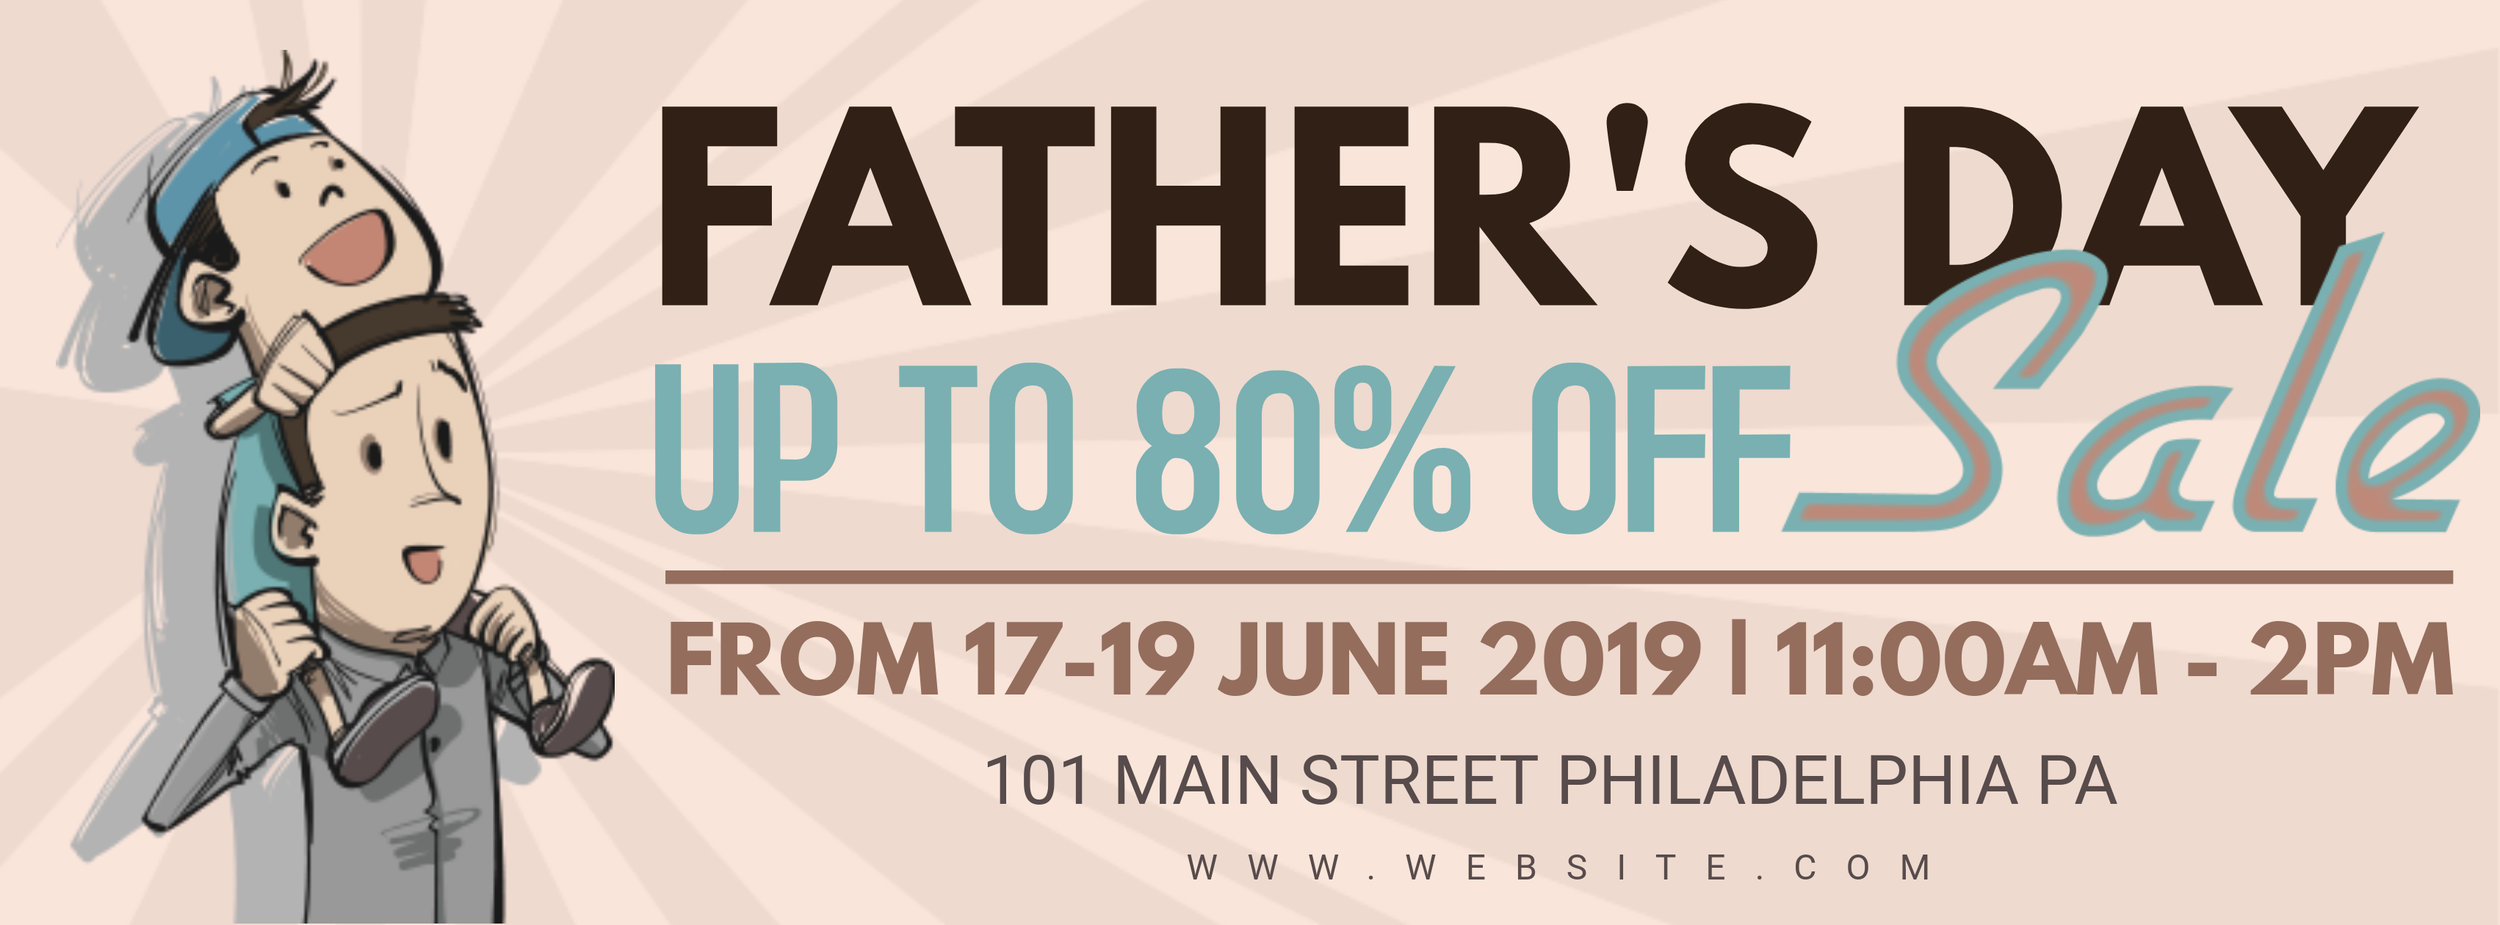 Father's day sale retail banners